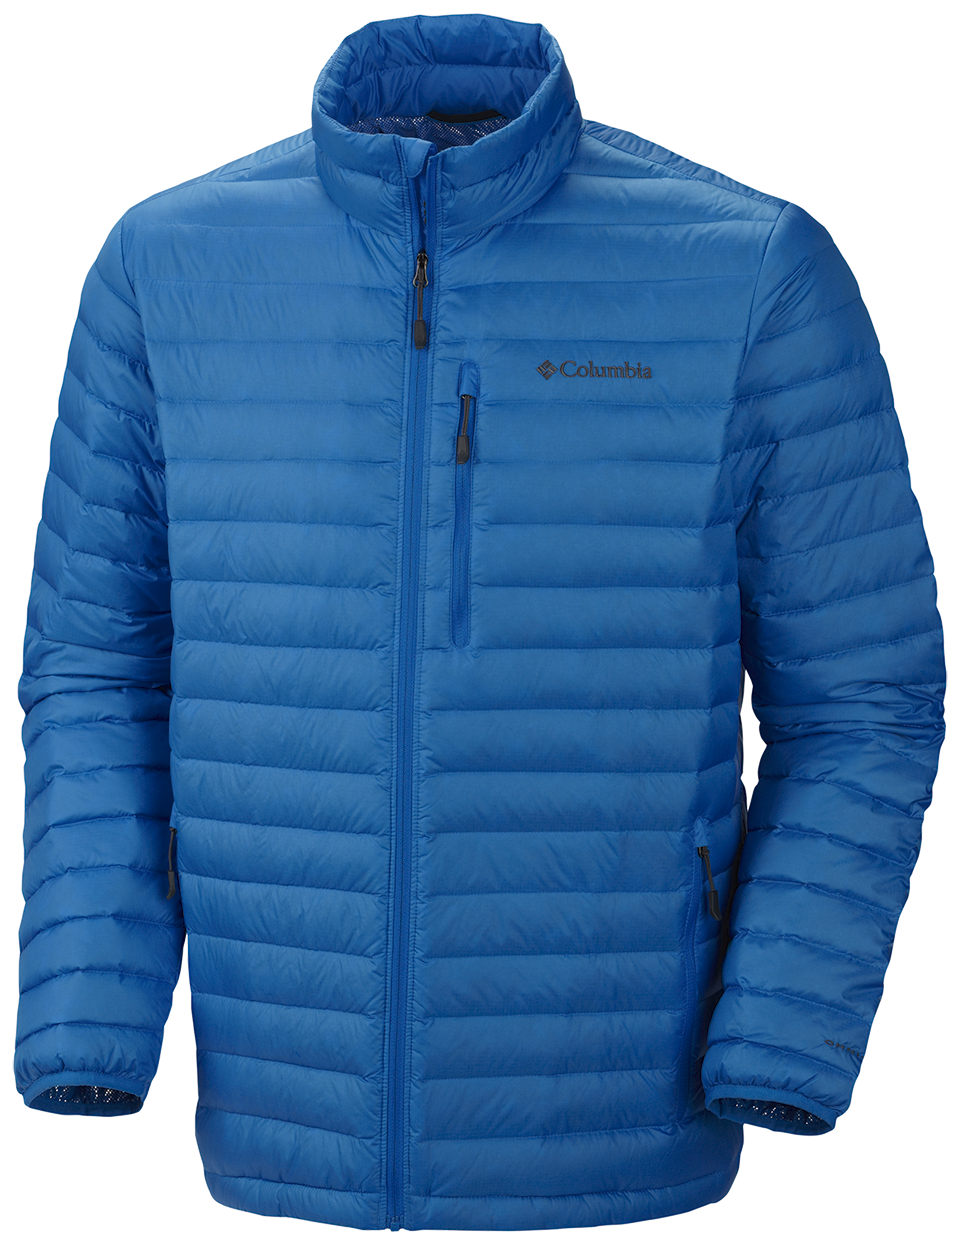 Columbia-Sportswear-F16-Compactor-T-Down-Jacket-431-960x1245.png